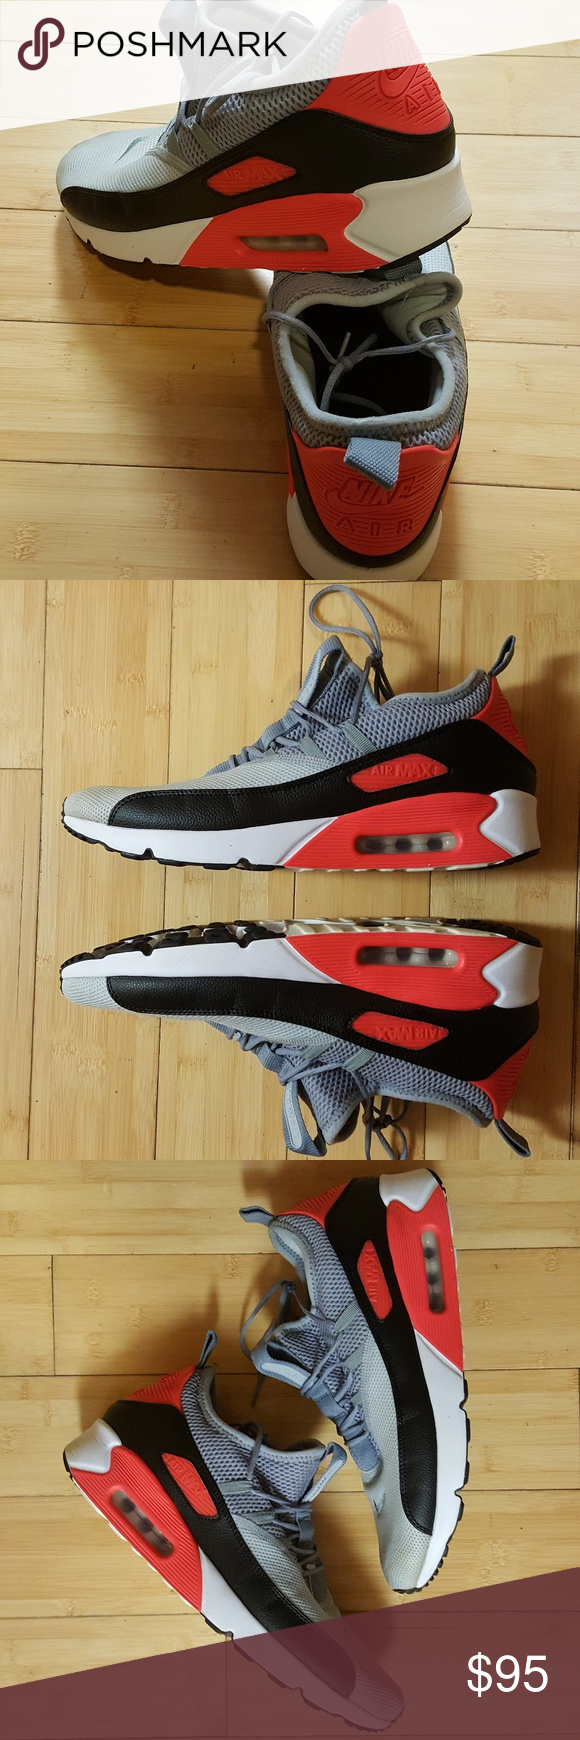 Air Max 90 Hyp Qs usa Nike 613841 440 midnight navy